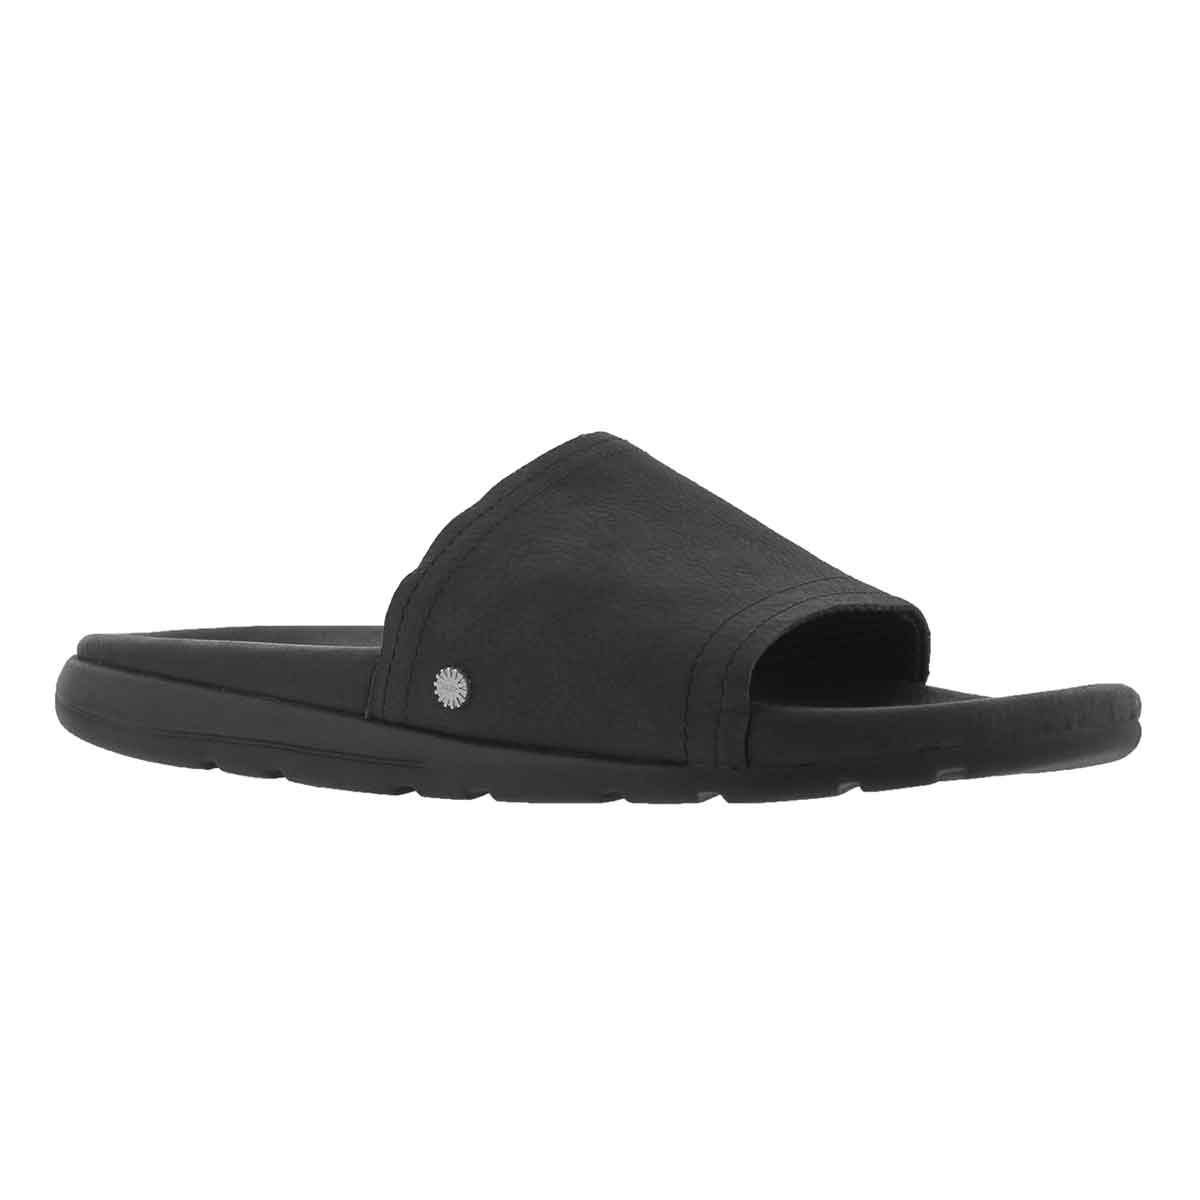 Men's XAVIER LUXE blk casual slide sandals